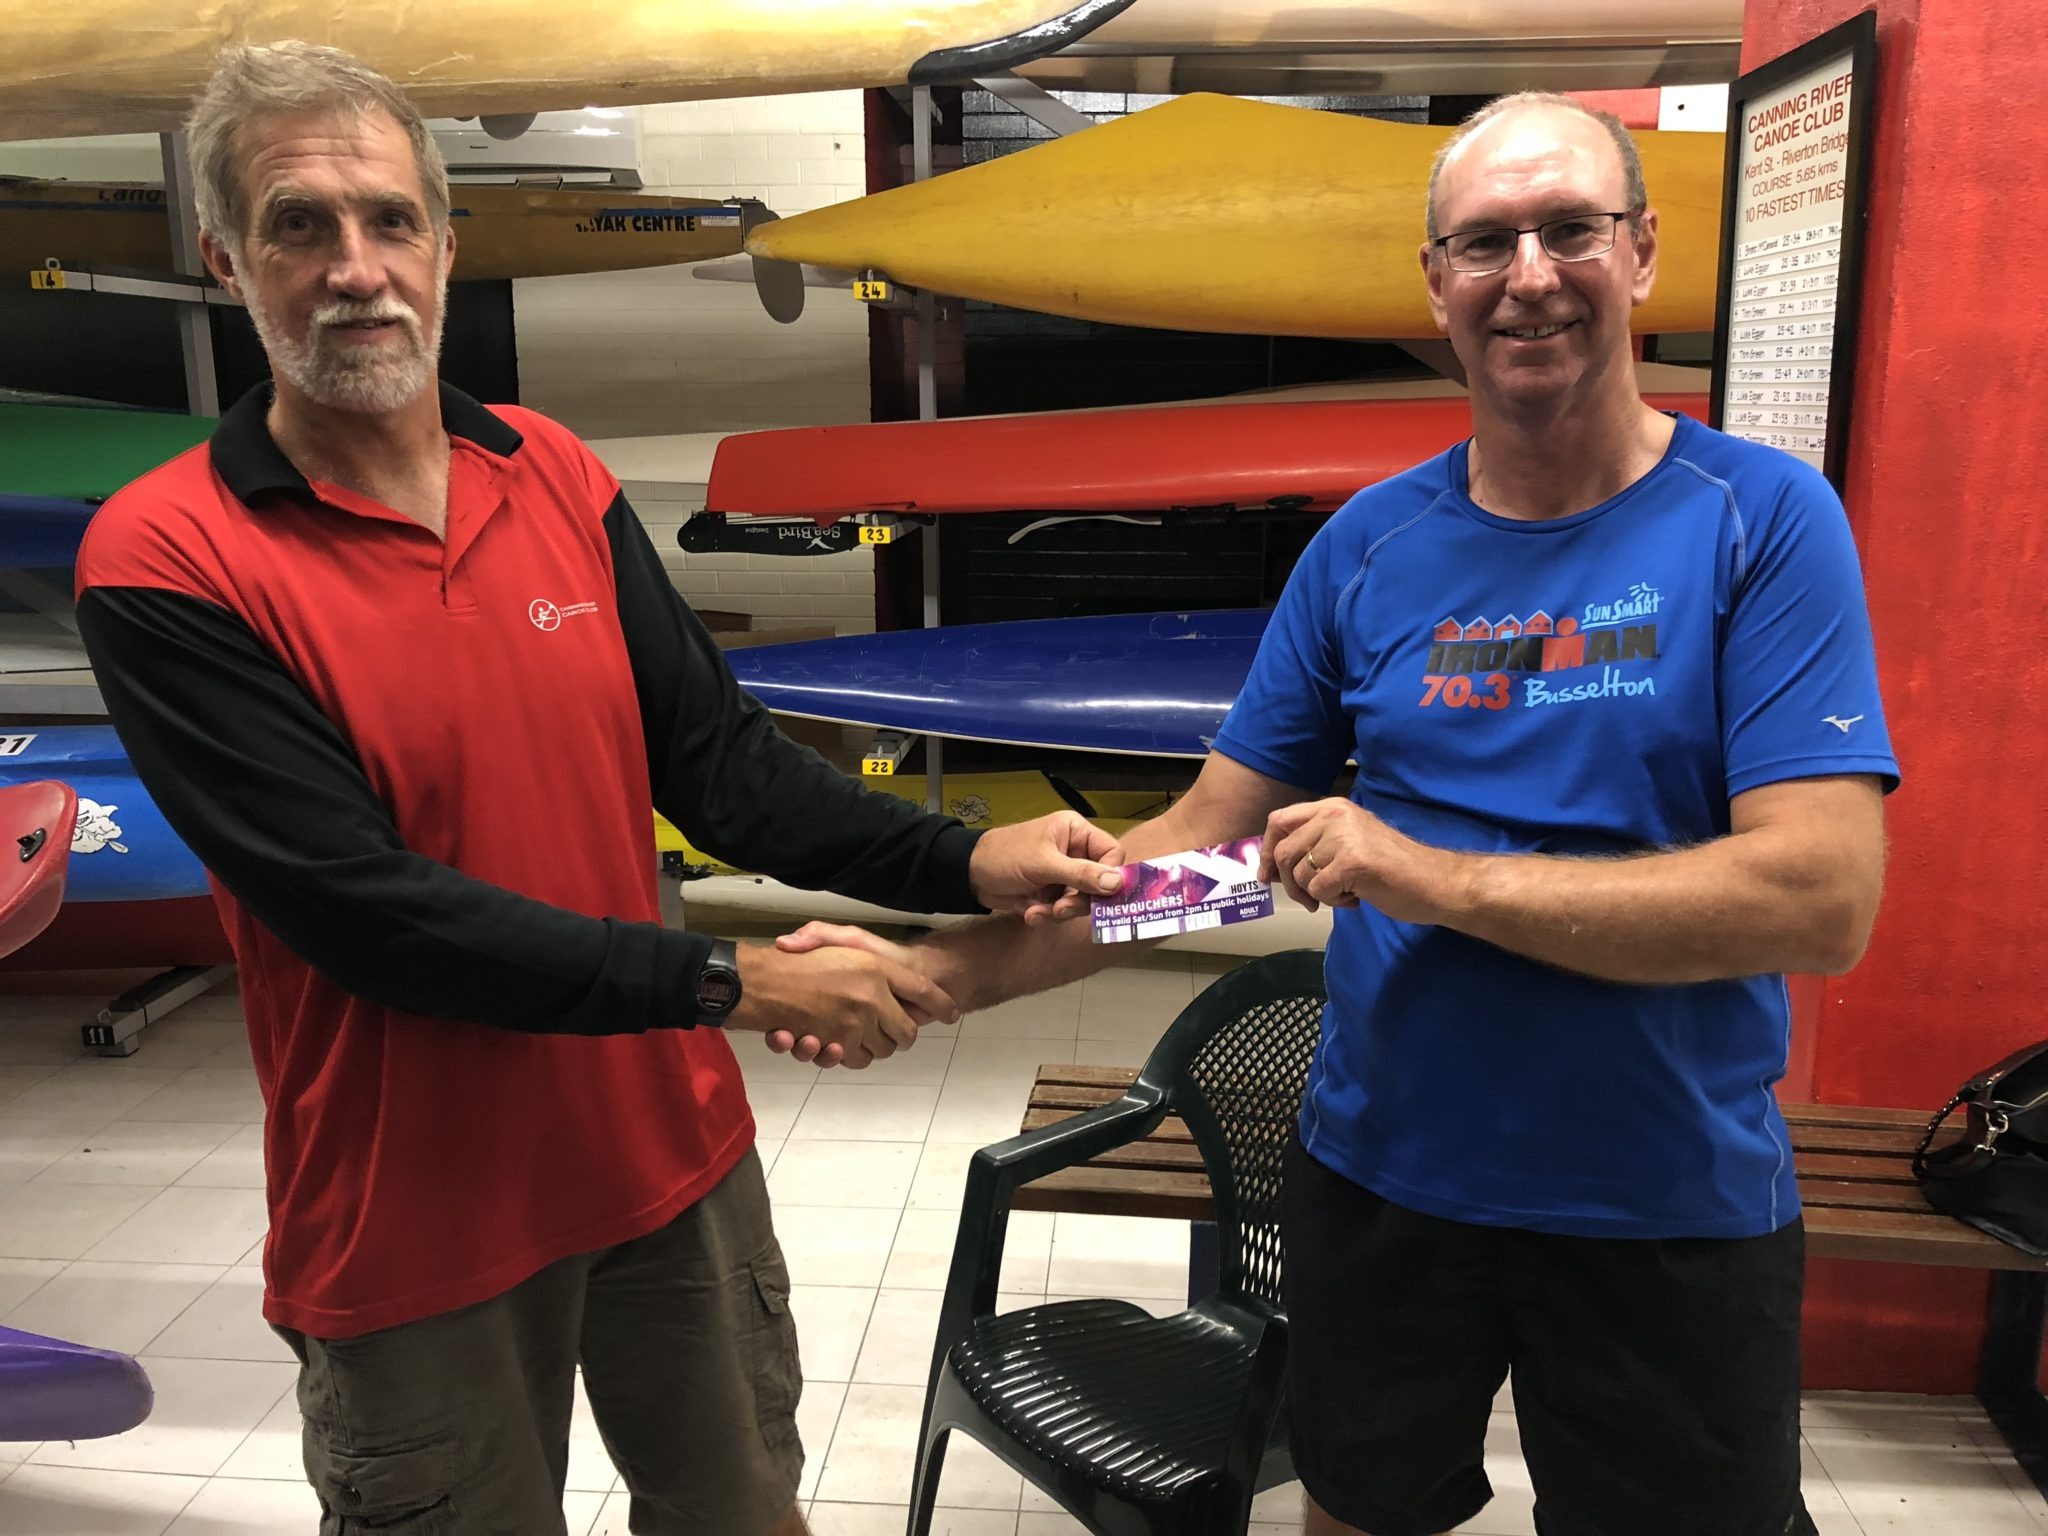 Tues 9th January 2018 : Tonight's photo shows Committee member Steve Coward presenting David Urquhart with a movie voucher